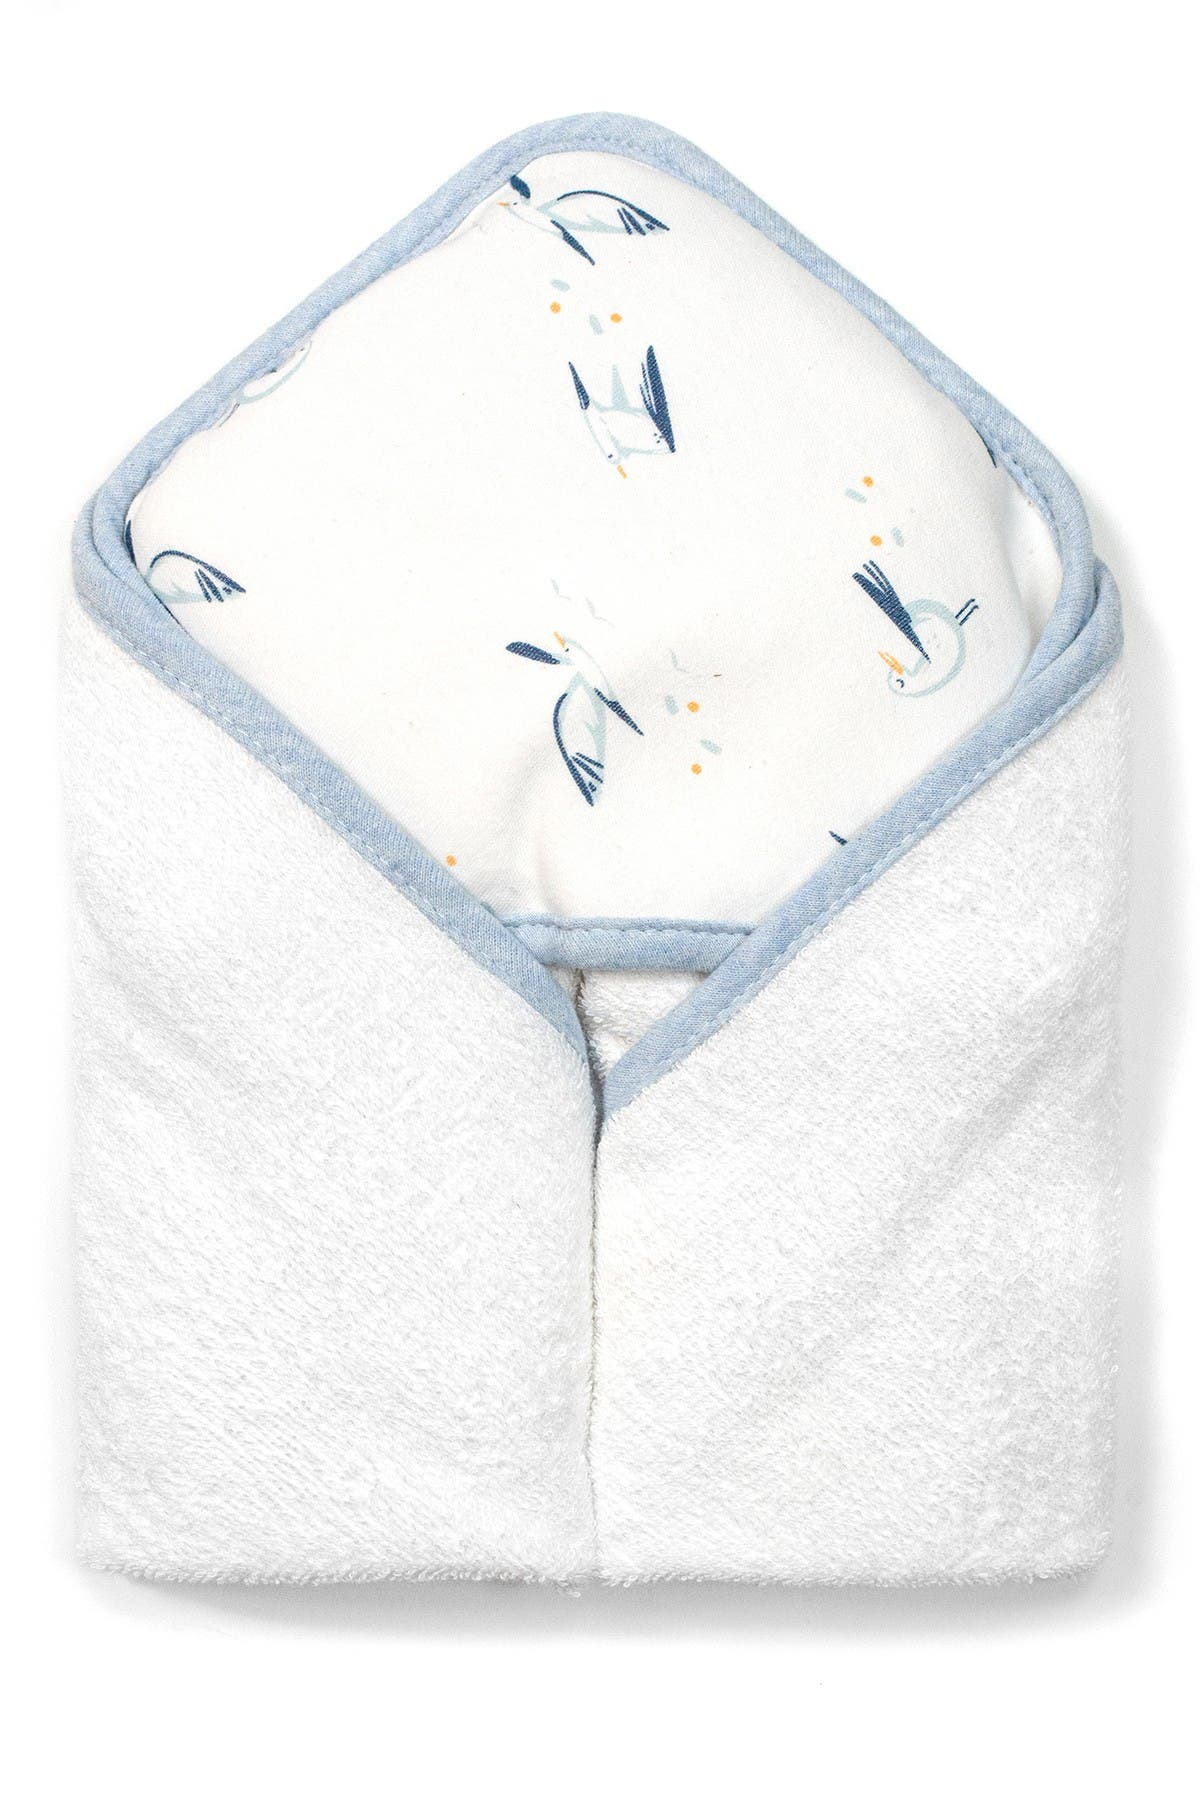 Image of RABBIT AND BEAR ORGANIC Bird Print Organic Hooded Towel